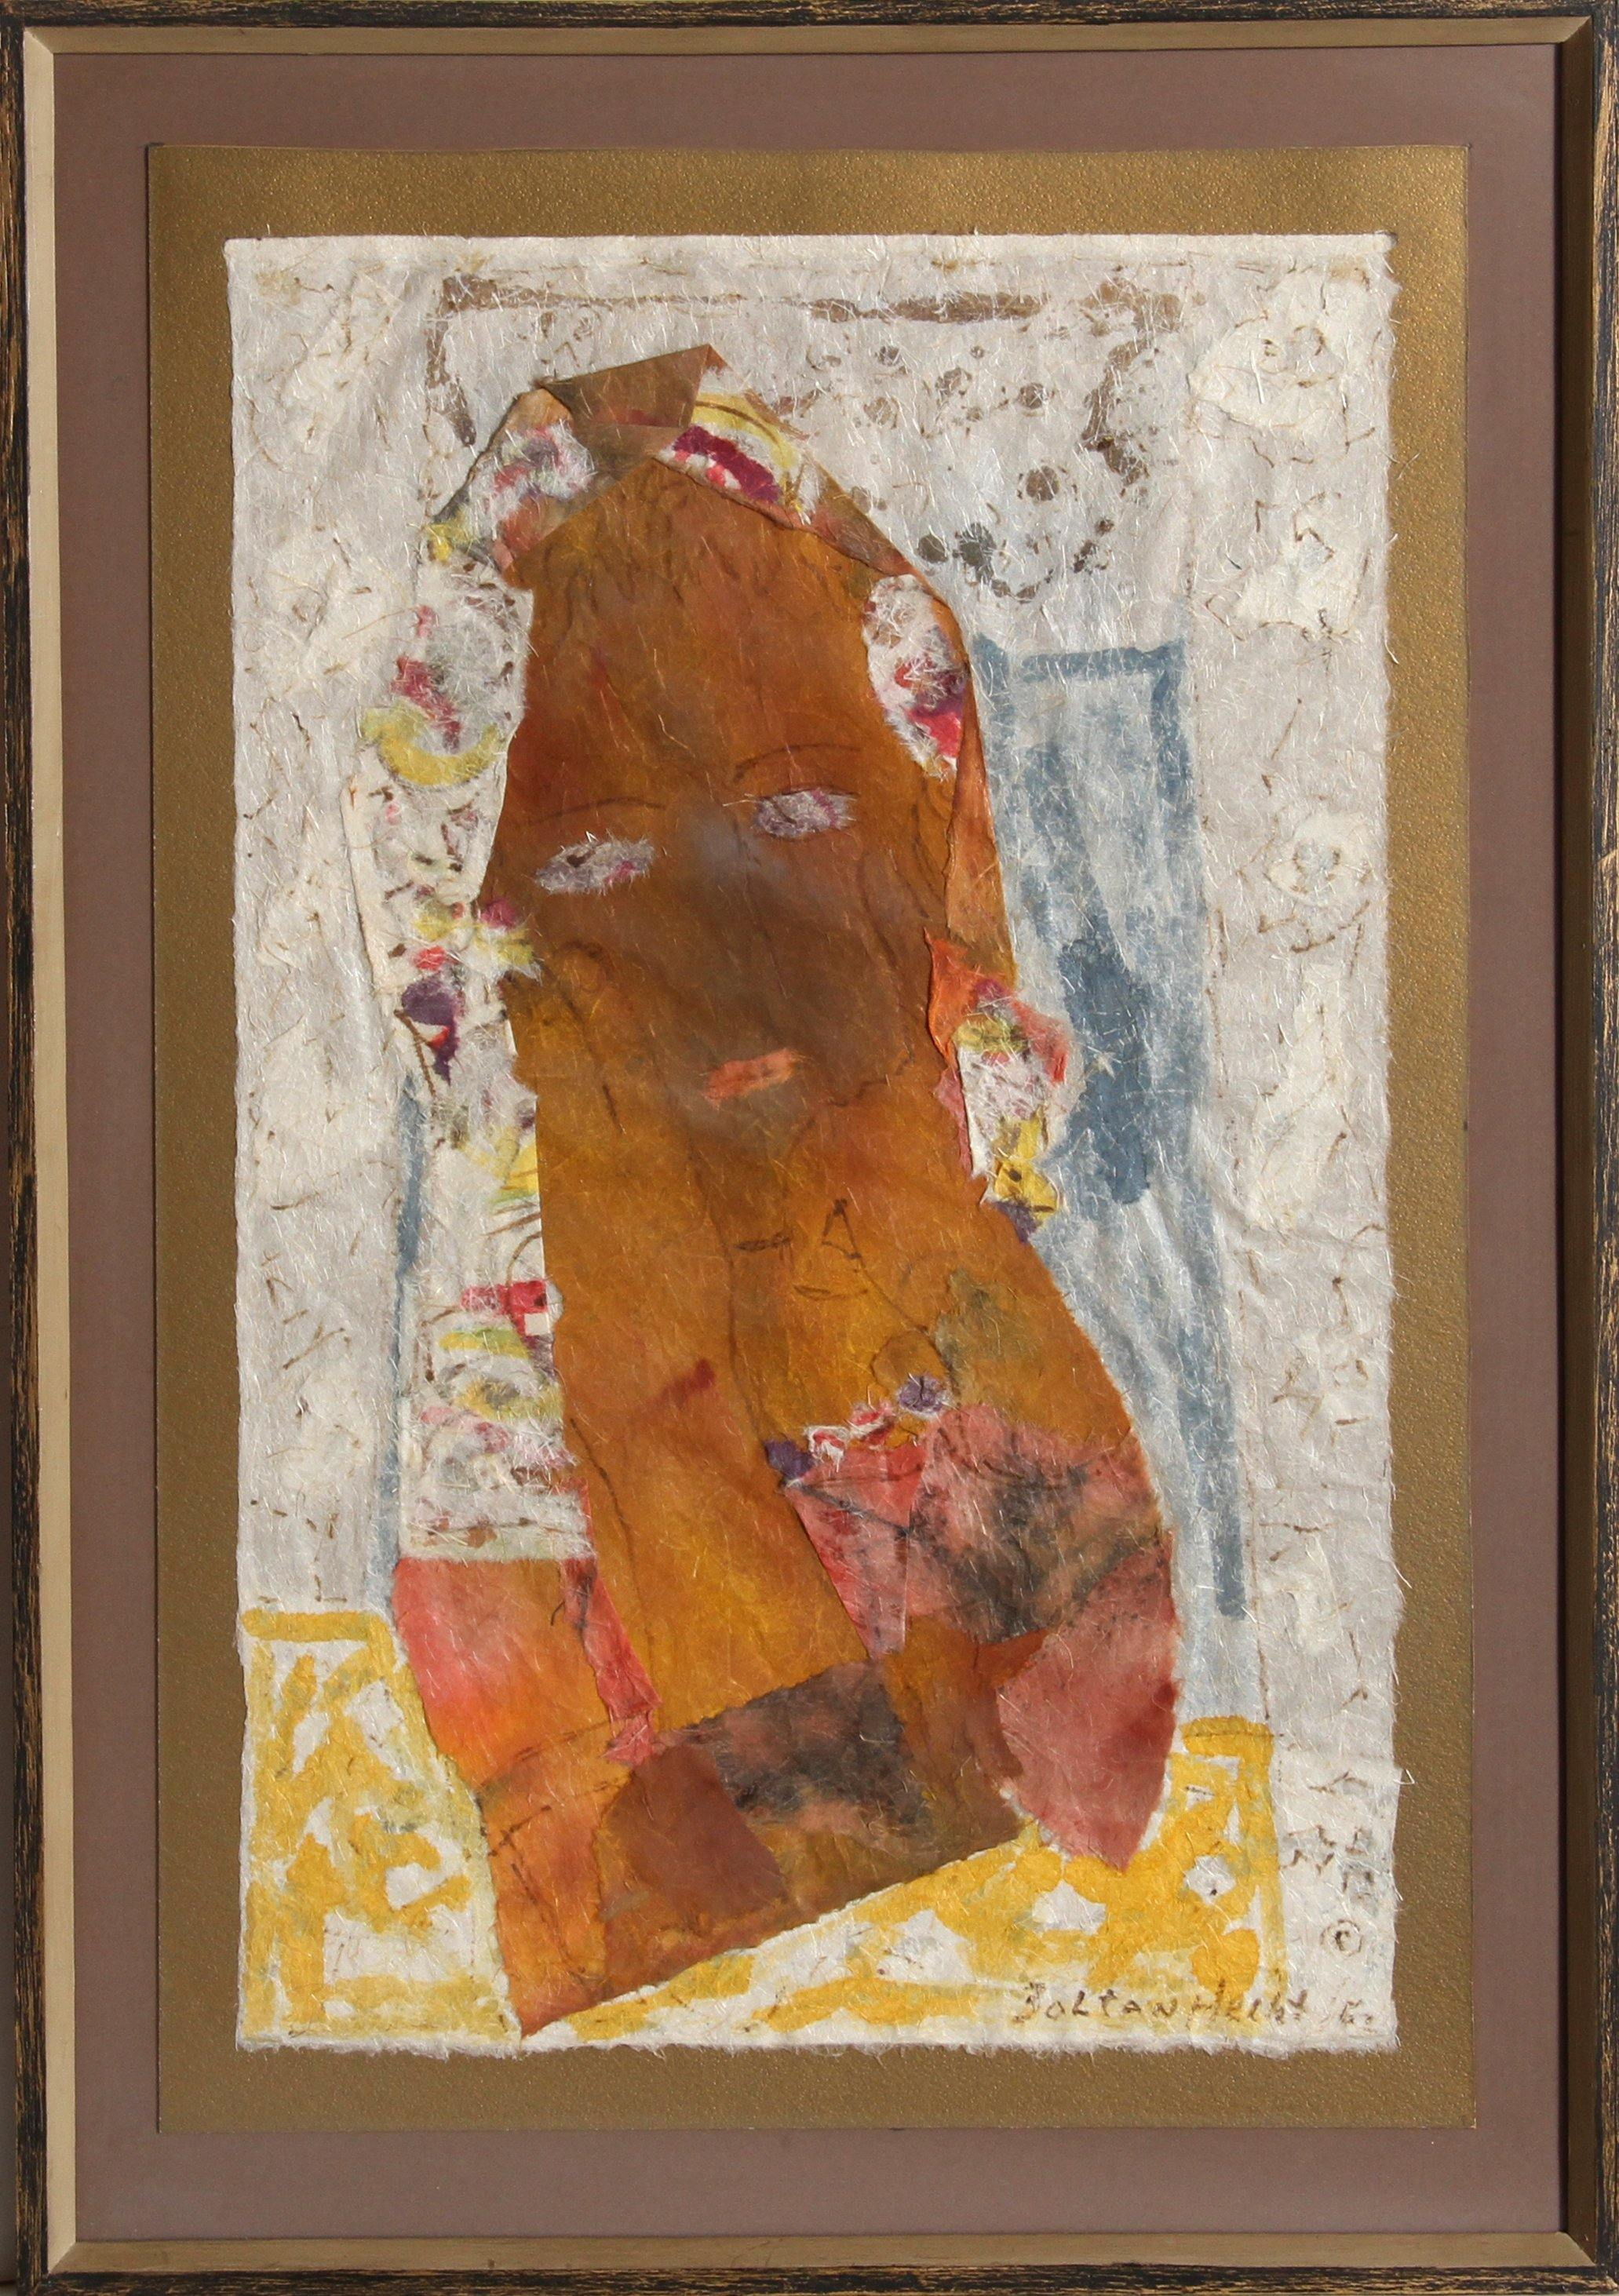 Zoltan Hecht, Untitled Mixed Media - RoGallery